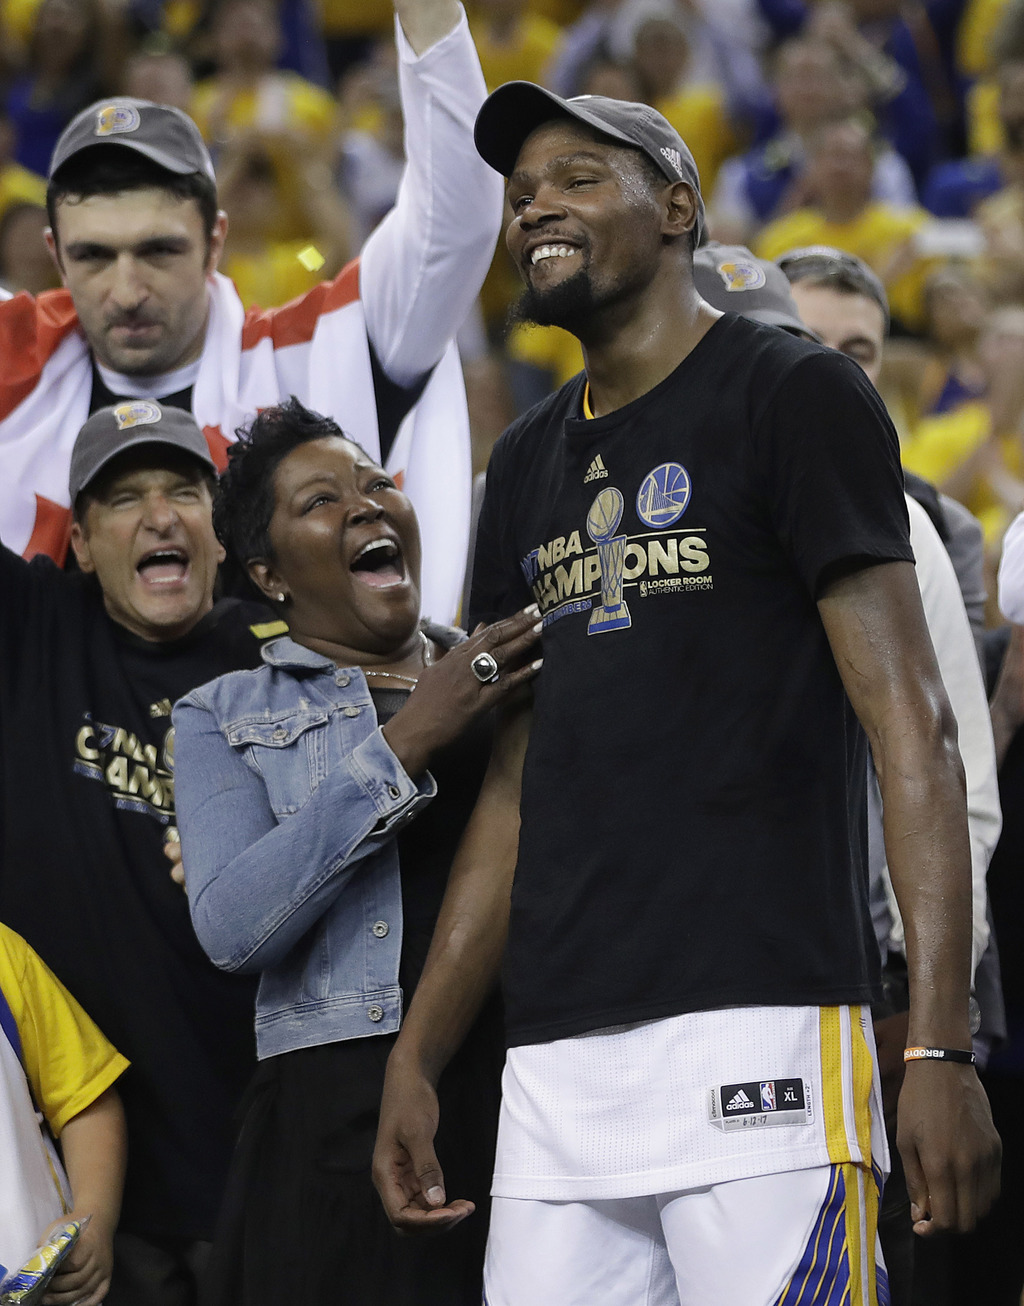 How Fans Have Dehumanized Kevin Durant and Other Athletes for Their Decisions